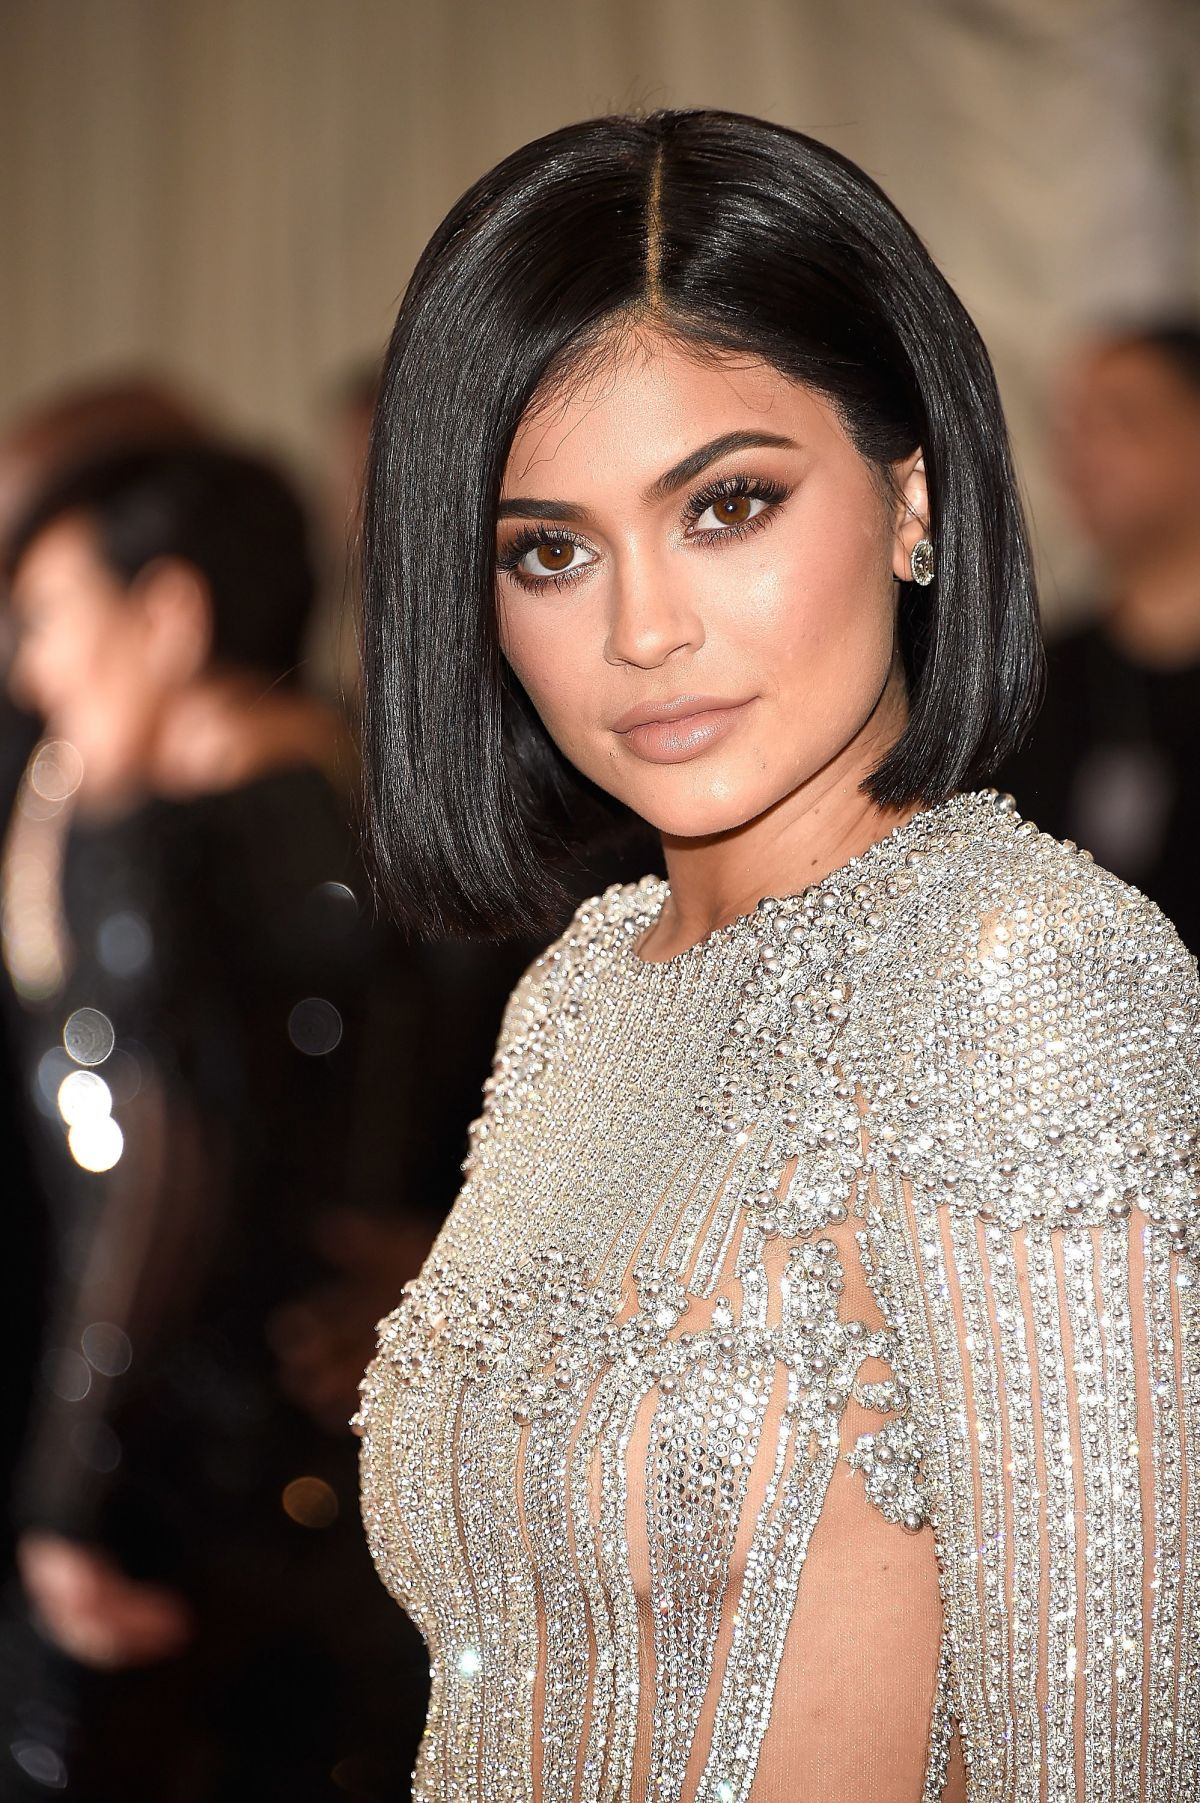 KYLIE JENNER at Costume Institute Gala 2016 in New York 05/02/2016